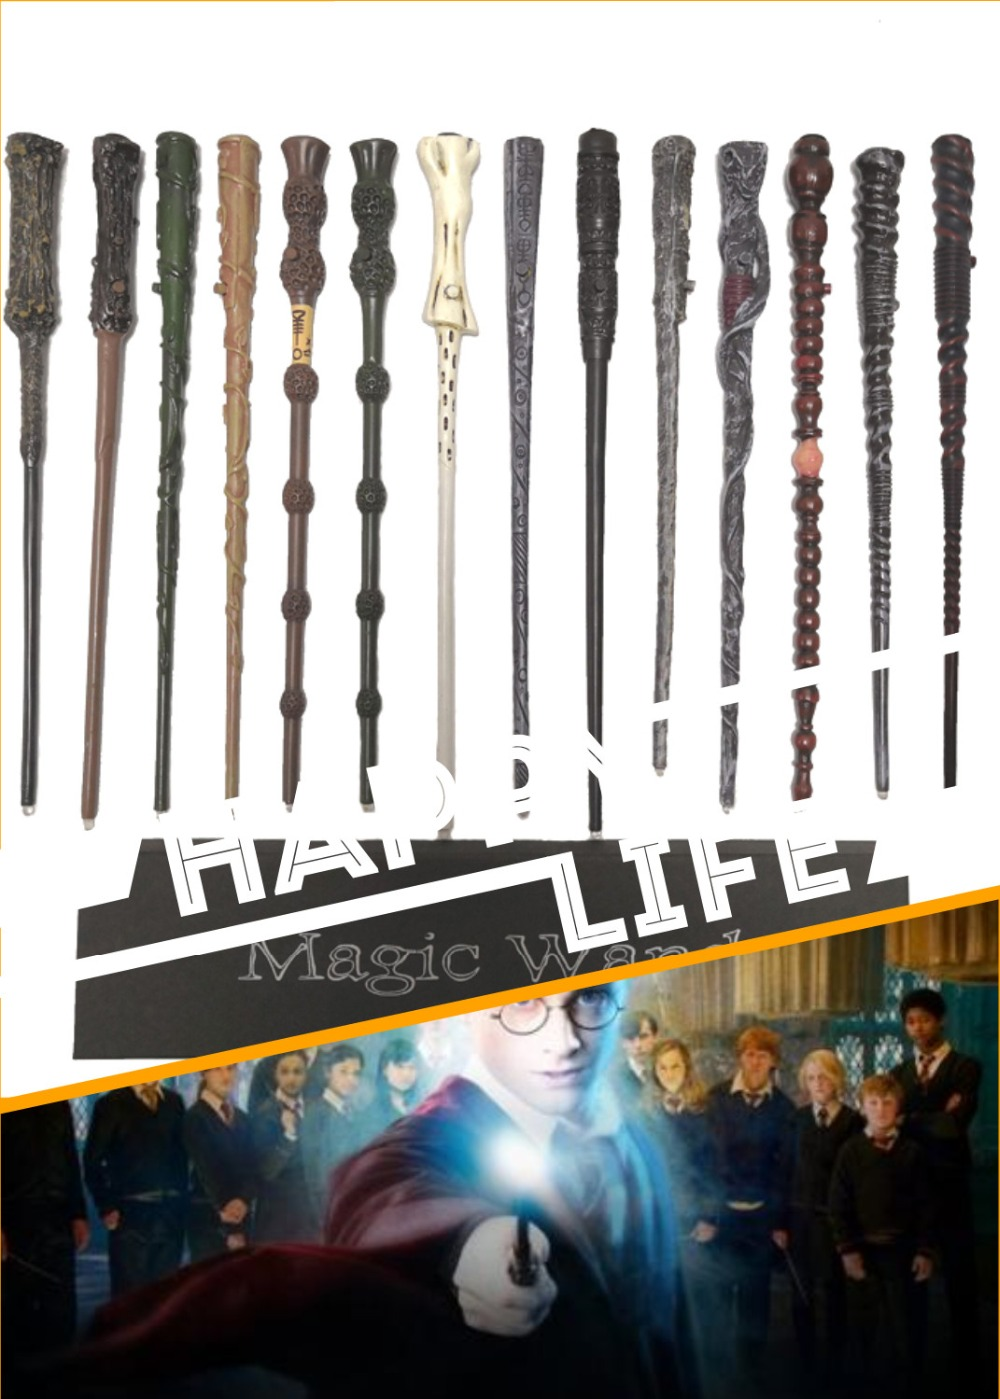 Quality Led light Snape Dumbledore Magic Wand Gift Box Cosplay Game Prop Collection Harry Toy Stick Free Train Ticket